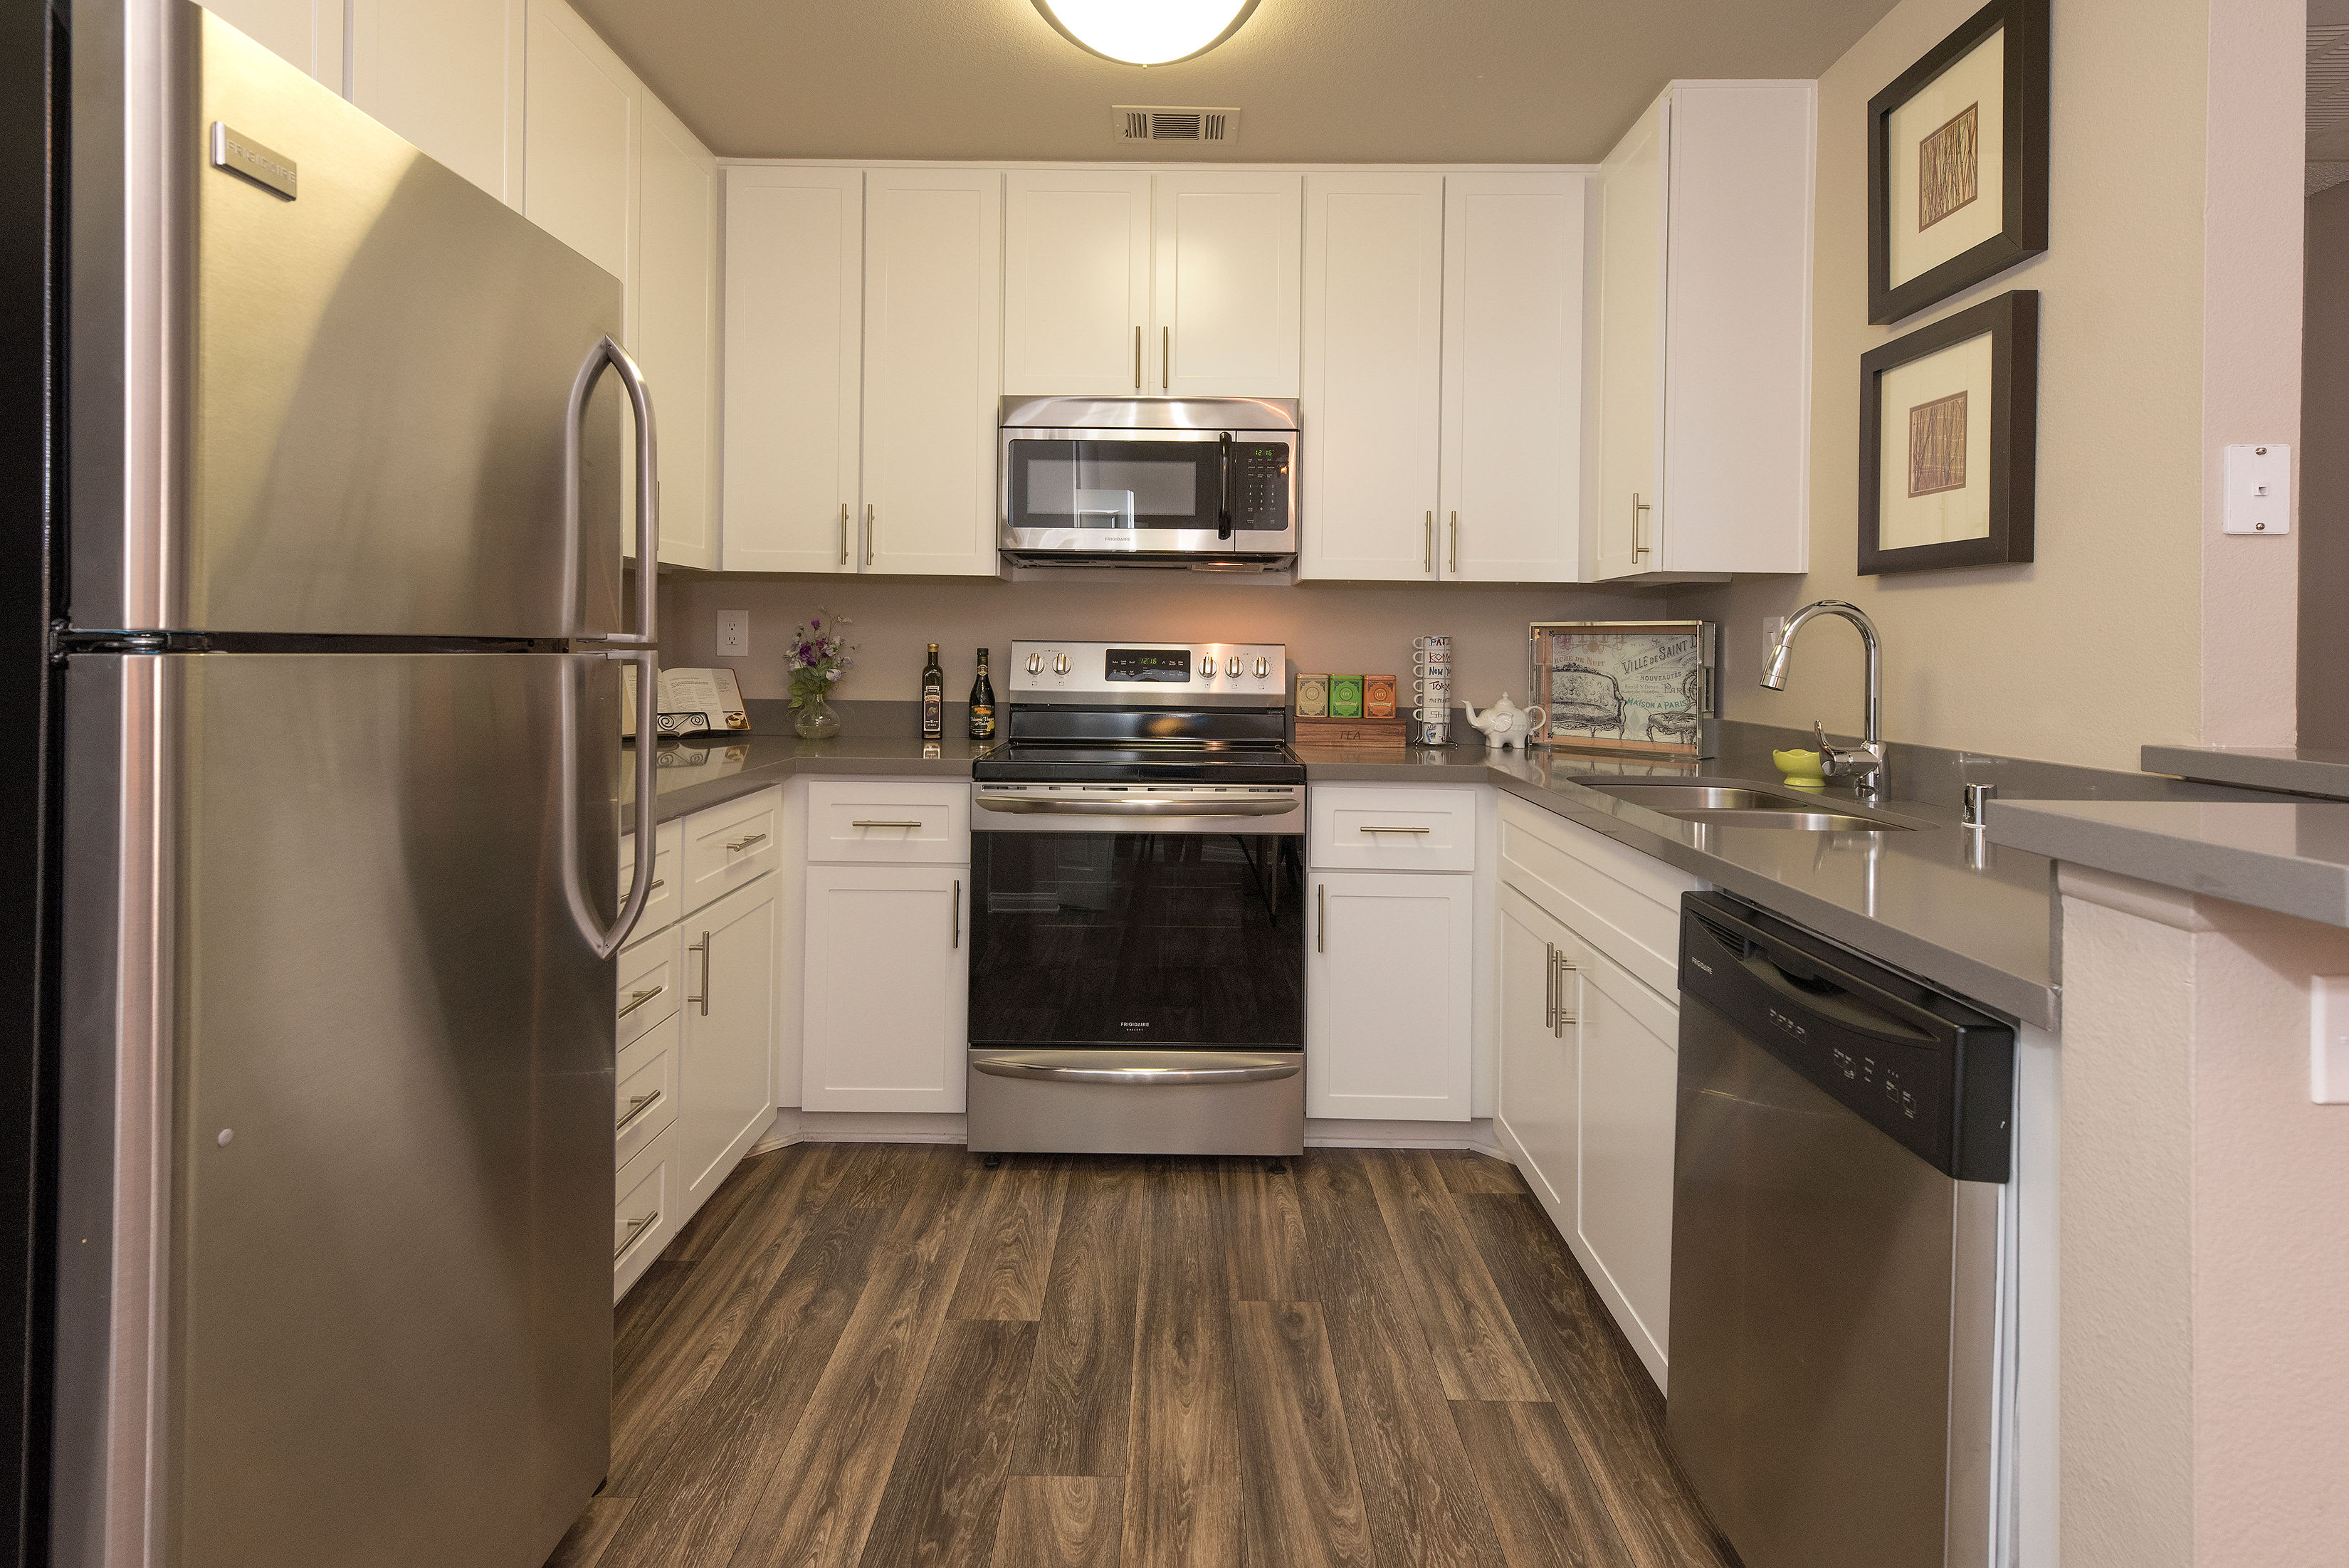 View our floor plans at Paloma Summit Condominium Rentals on our website